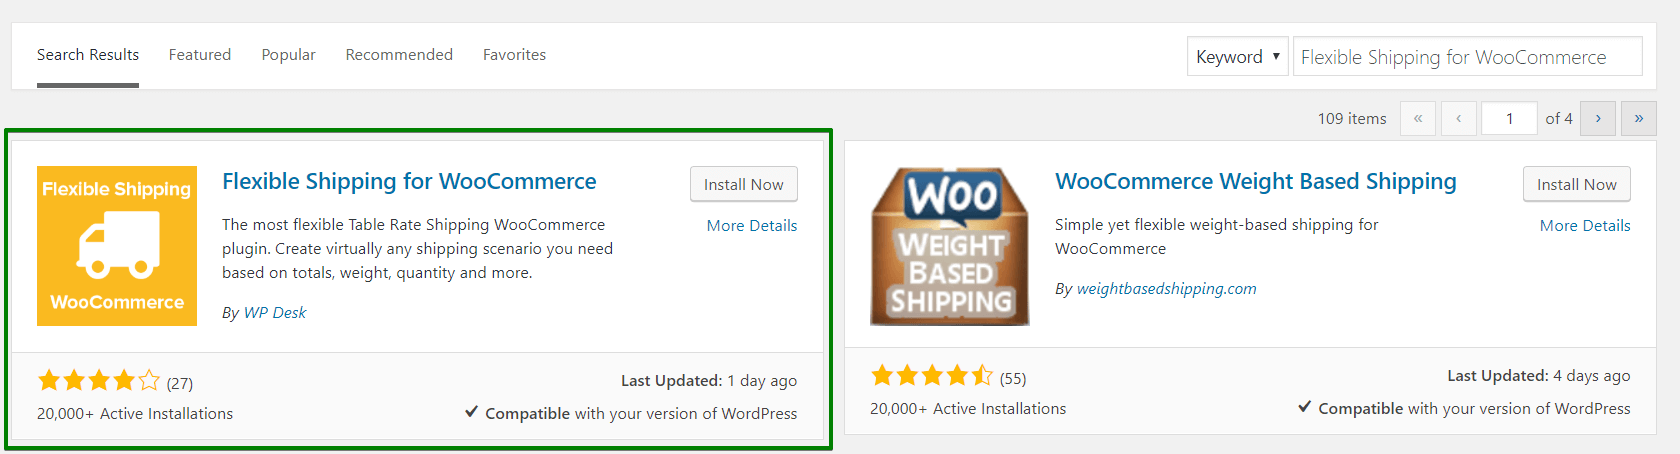 Flexible Shipping plugin download